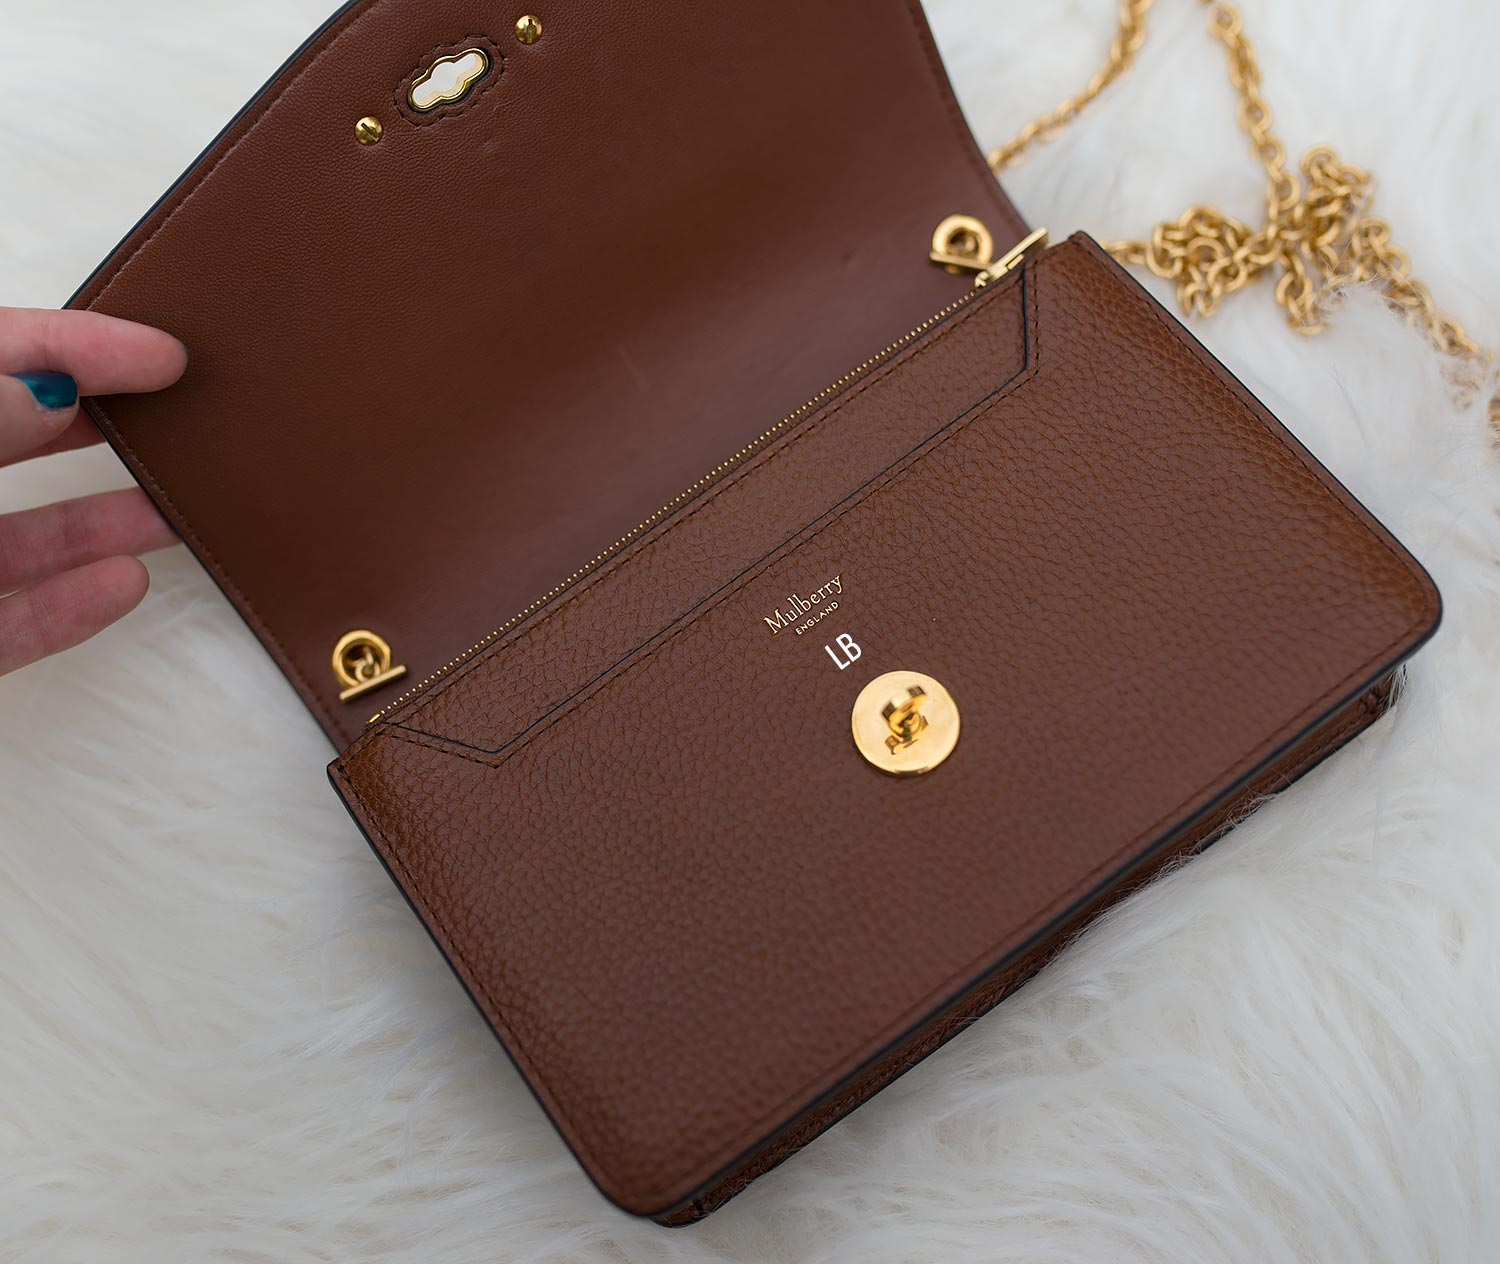 Click here to buy Mulberry Darley Bags online at Mulberry.com e77e7ca432399